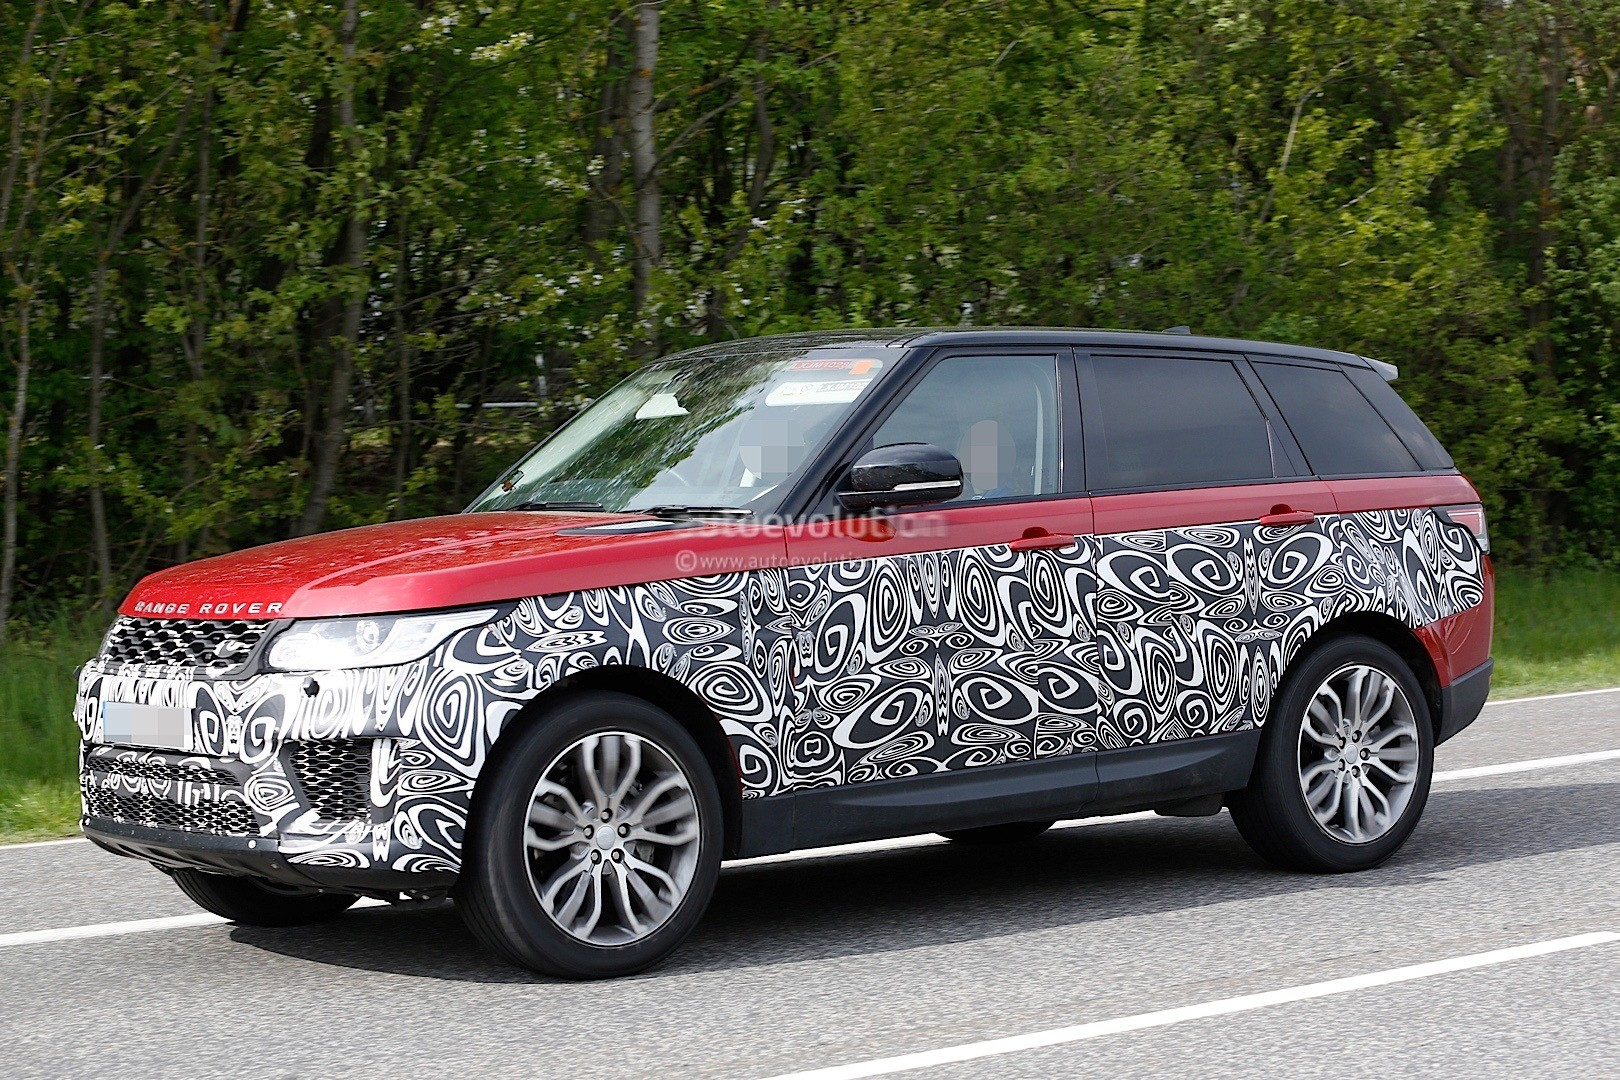 2017 range rover sport facelift spied inside out autoevolution. Black Bedroom Furniture Sets. Home Design Ideas